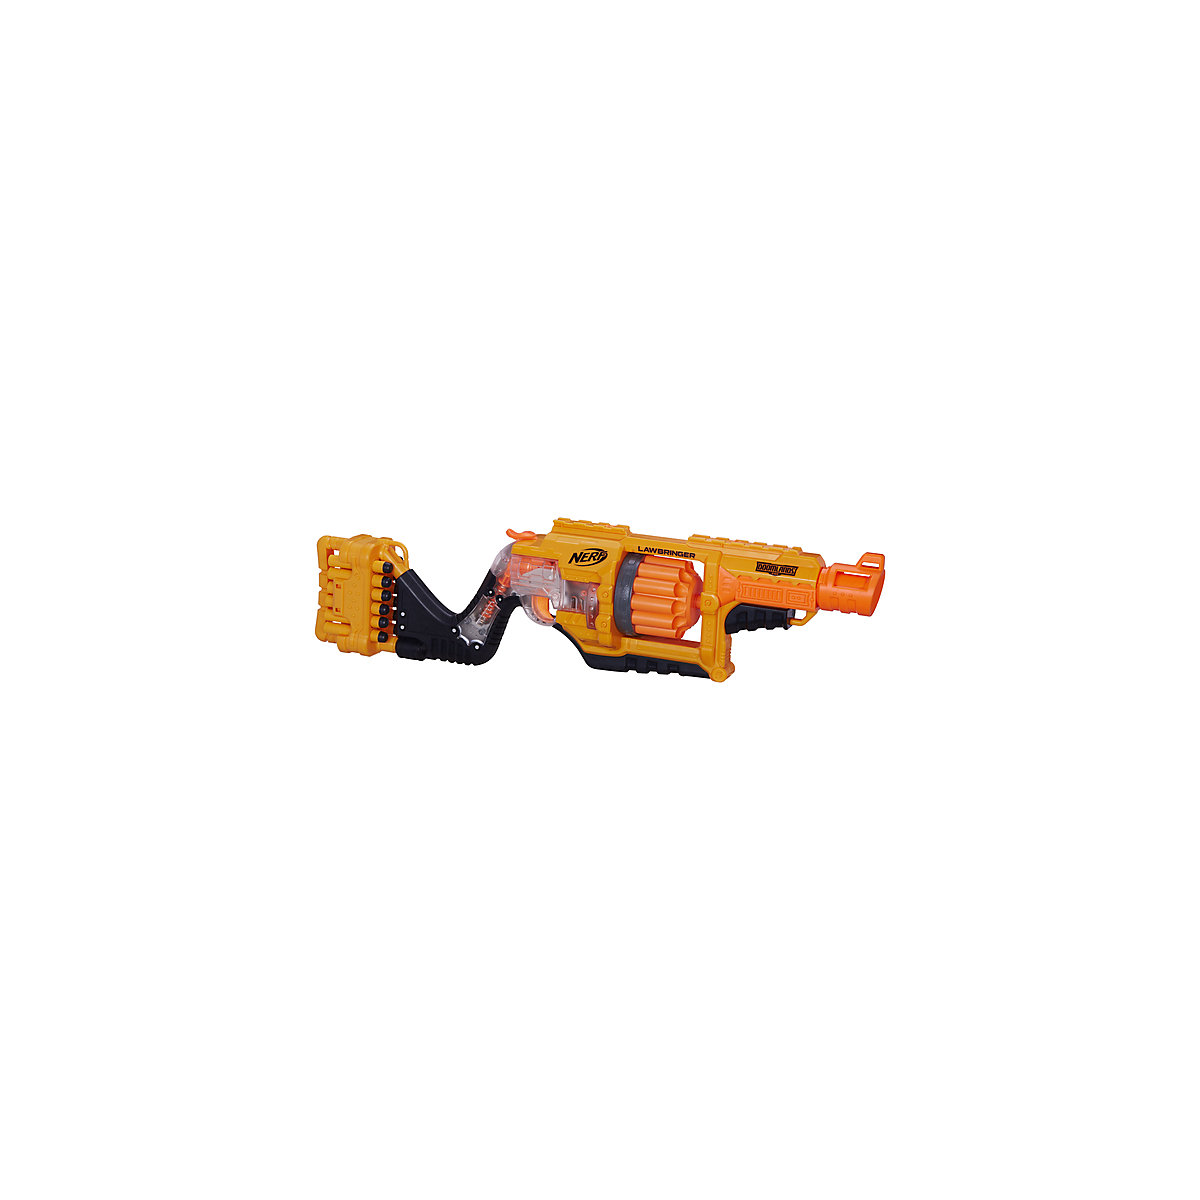 Toy Guns NERF 10023651 Children Kids Toy Gun Weapon Blasters Boys Shooting games Outdoor play new summer water sports baby kids inflatable swimming pool pvc portable swim family play pool children bath tub kids toy